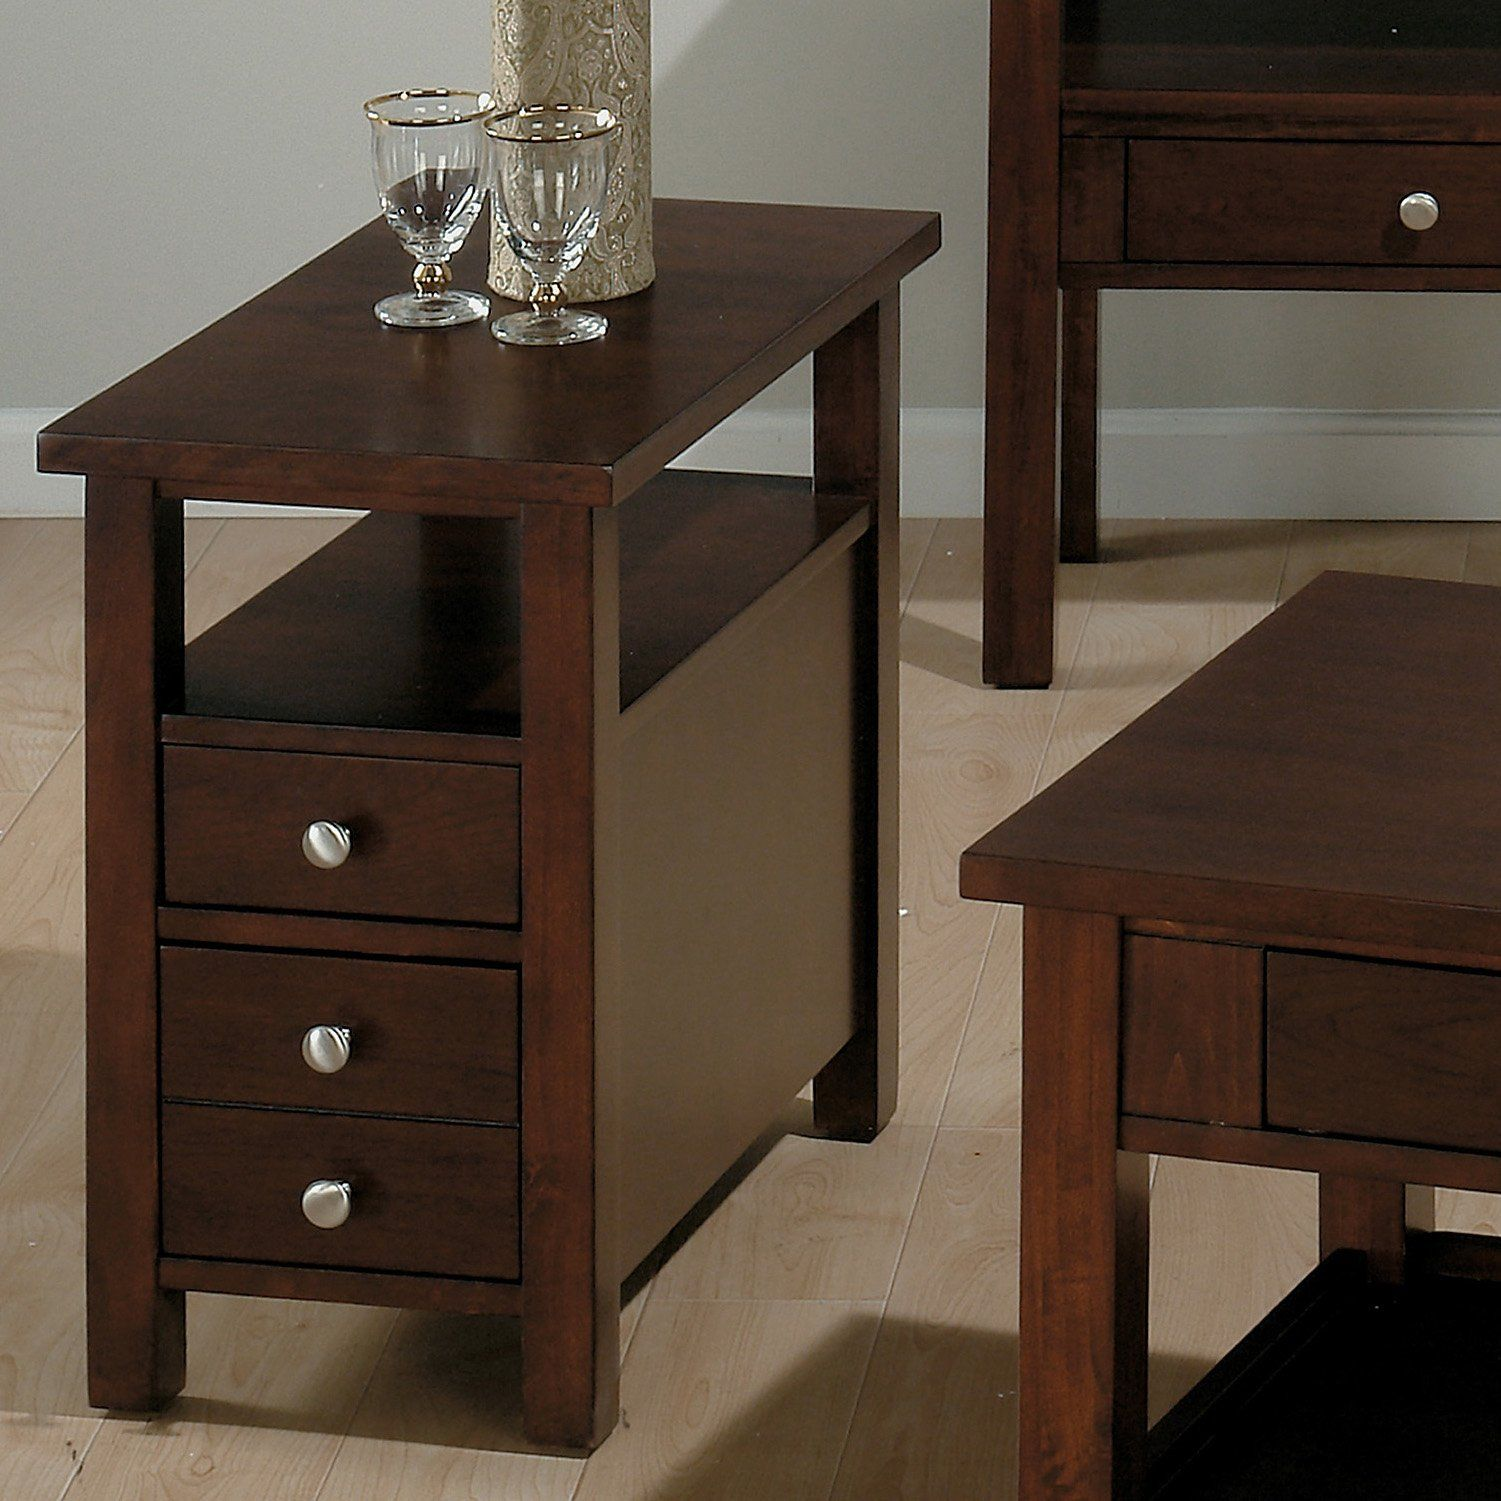 Painting Of Perfect Small End Table With Drawer With Images Chair Side Table Small End Tables Side Table With Drawer